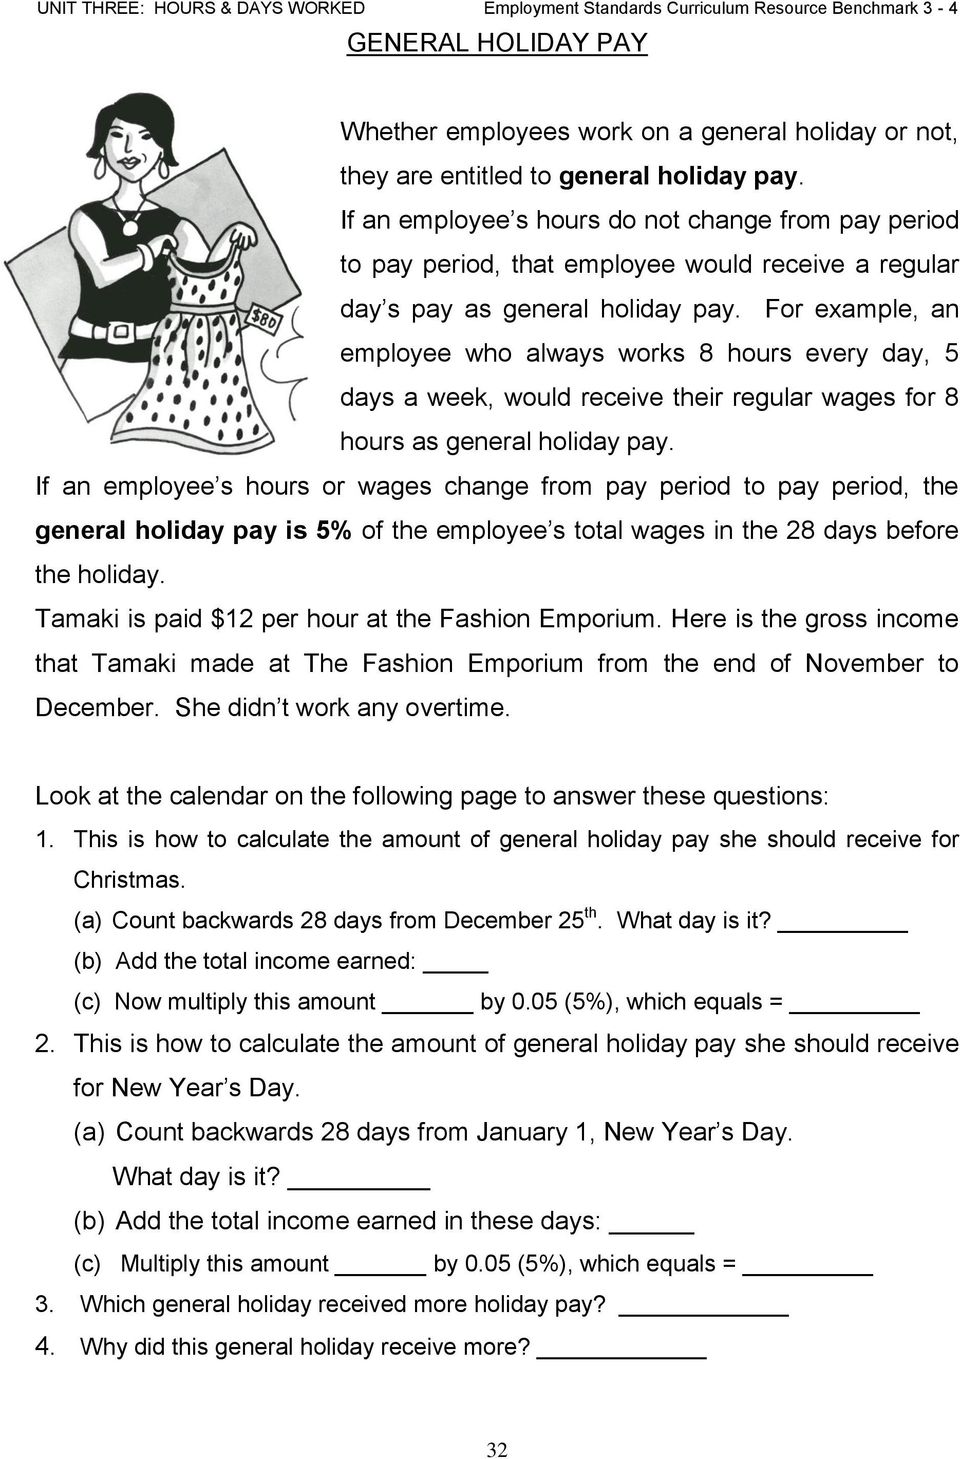 For example, an employee who always works 8 hours every day, 5 days a week, would receive their regular wages for 8 hours as general holiday pay.